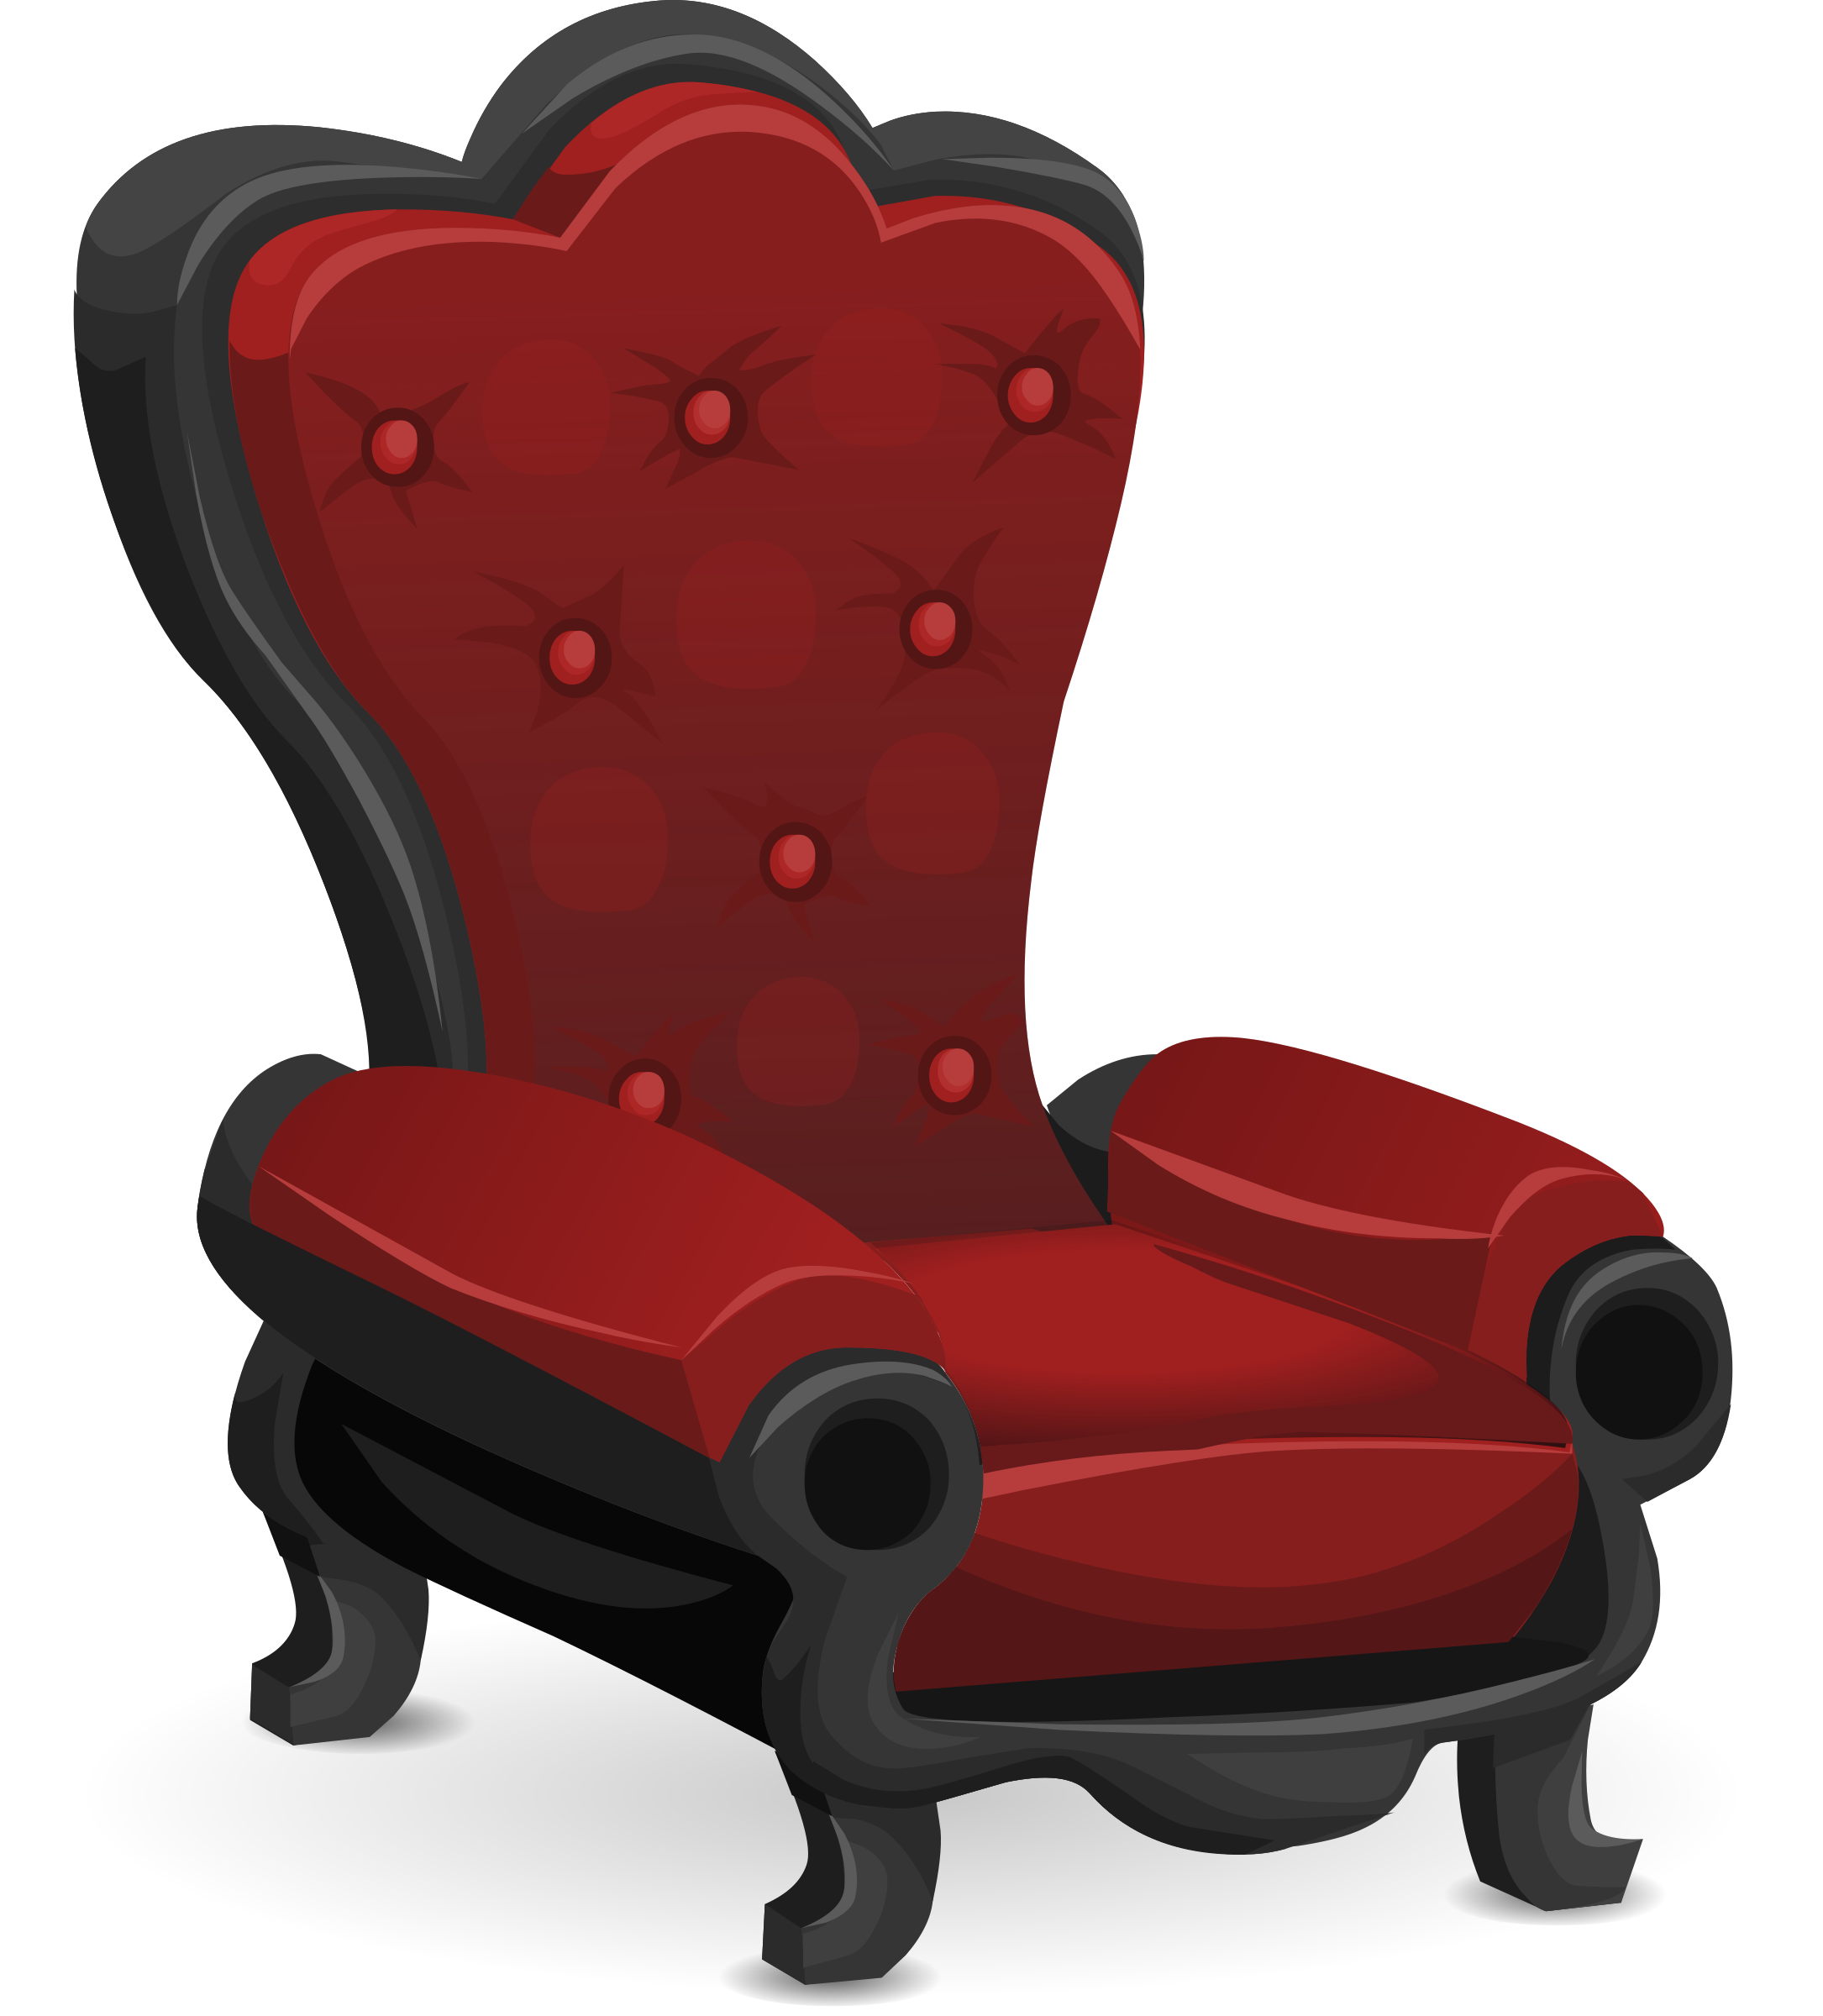 Fancy chair by anarres